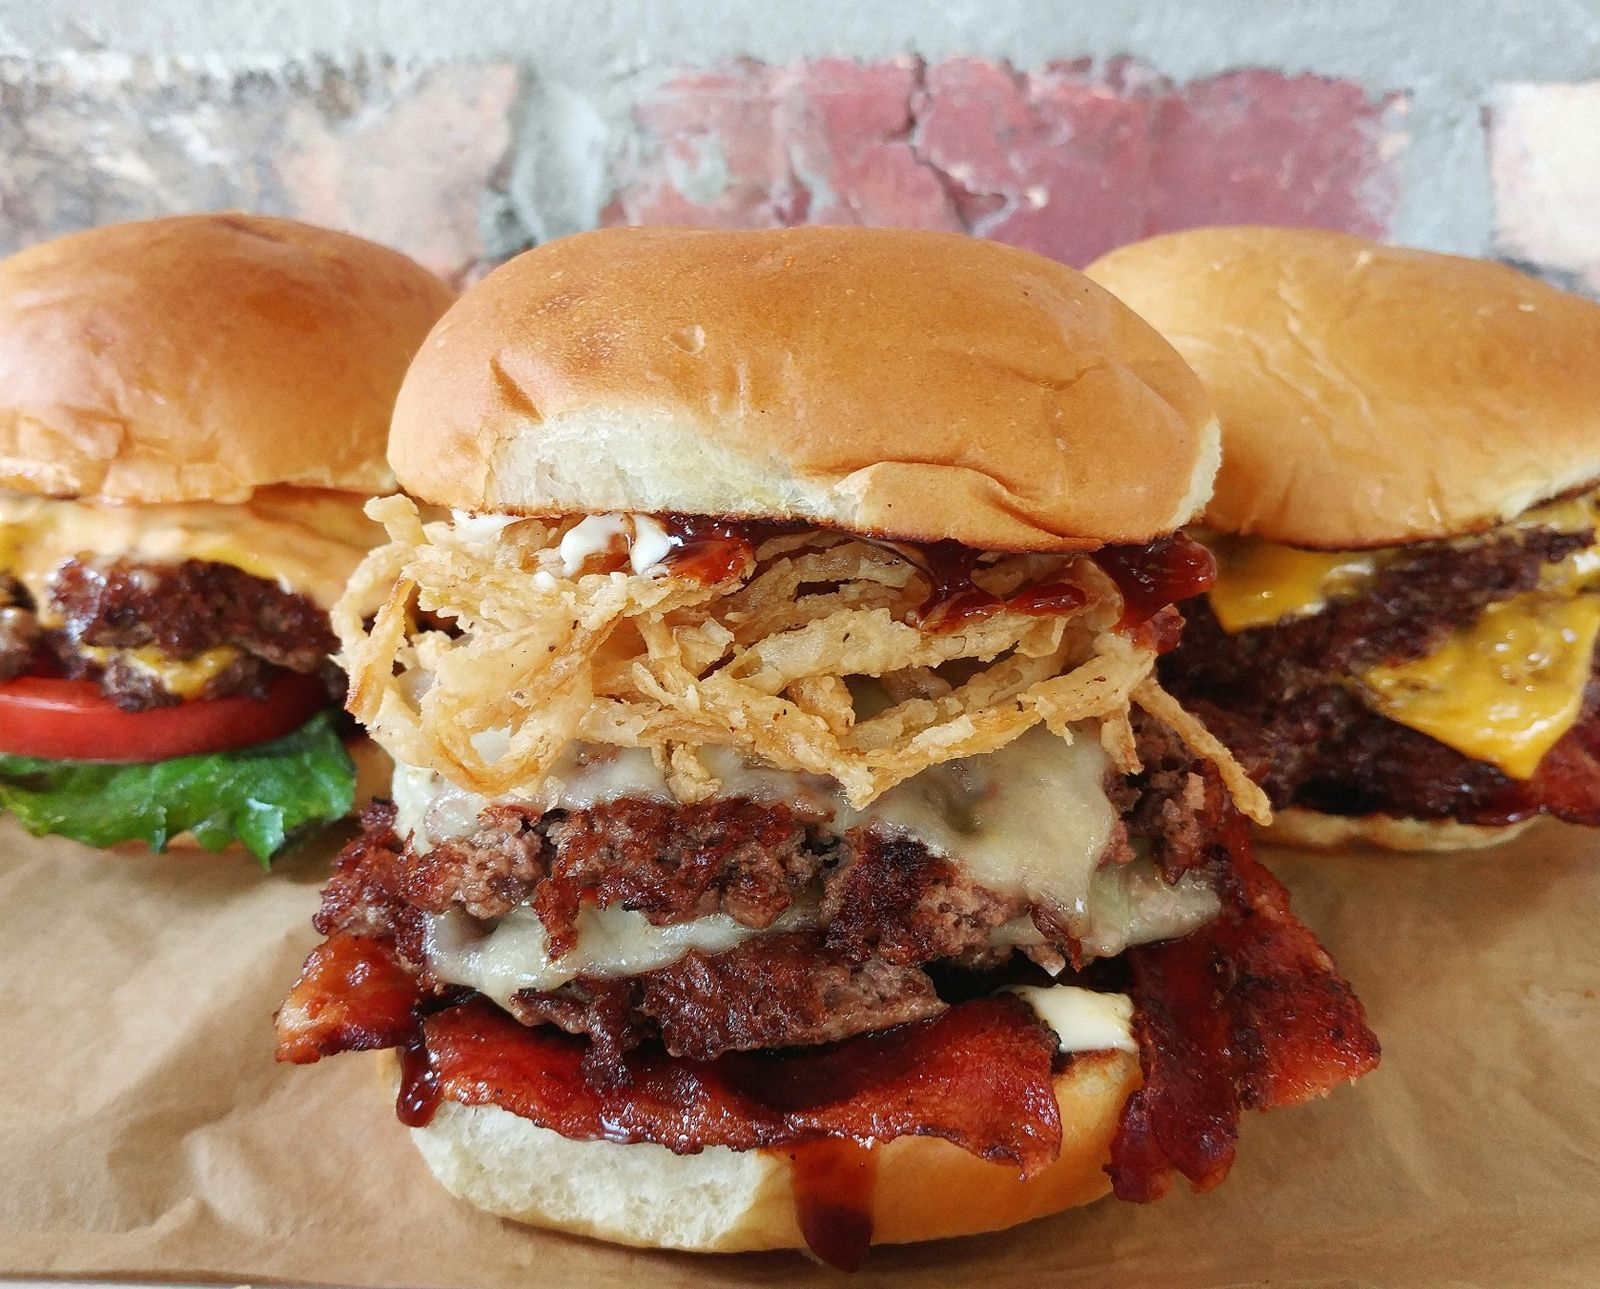 MOOYAH Burgers, Fries & Shakes Opens New Location in Blue Bell, Pennsylvania